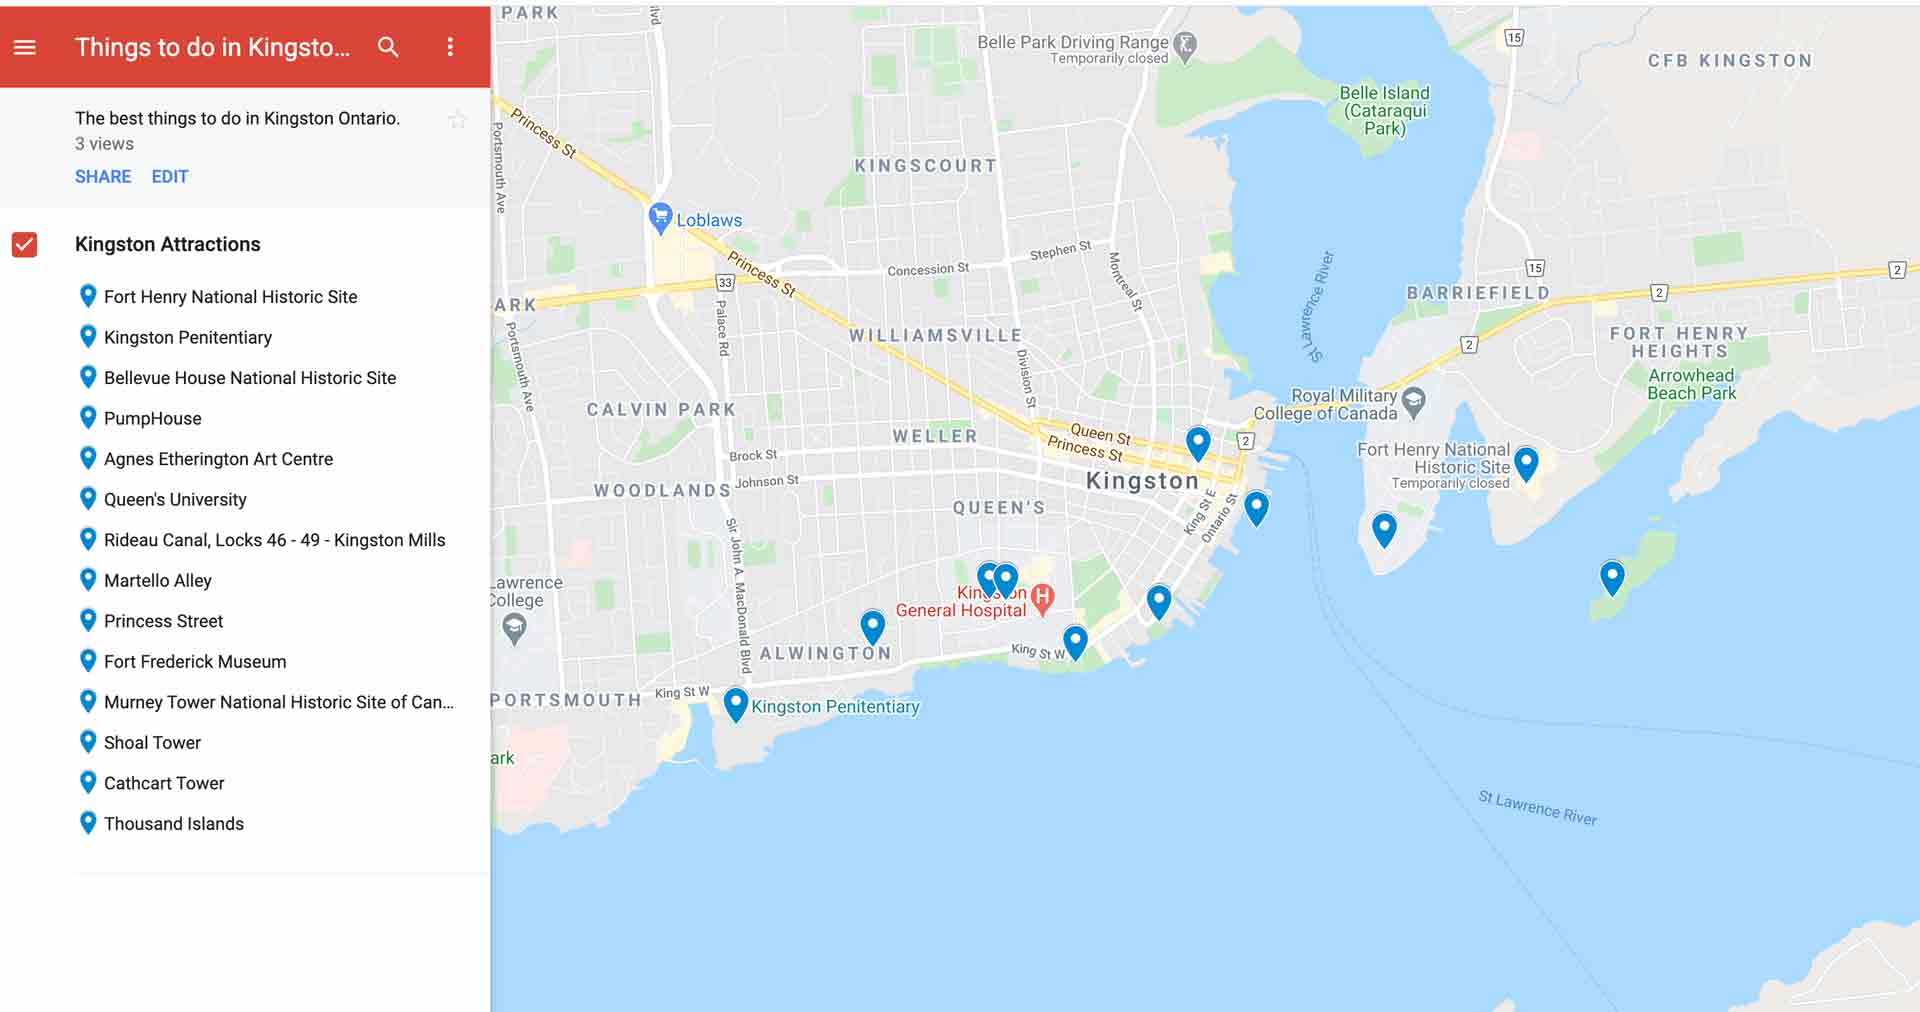 things to do in kingston map